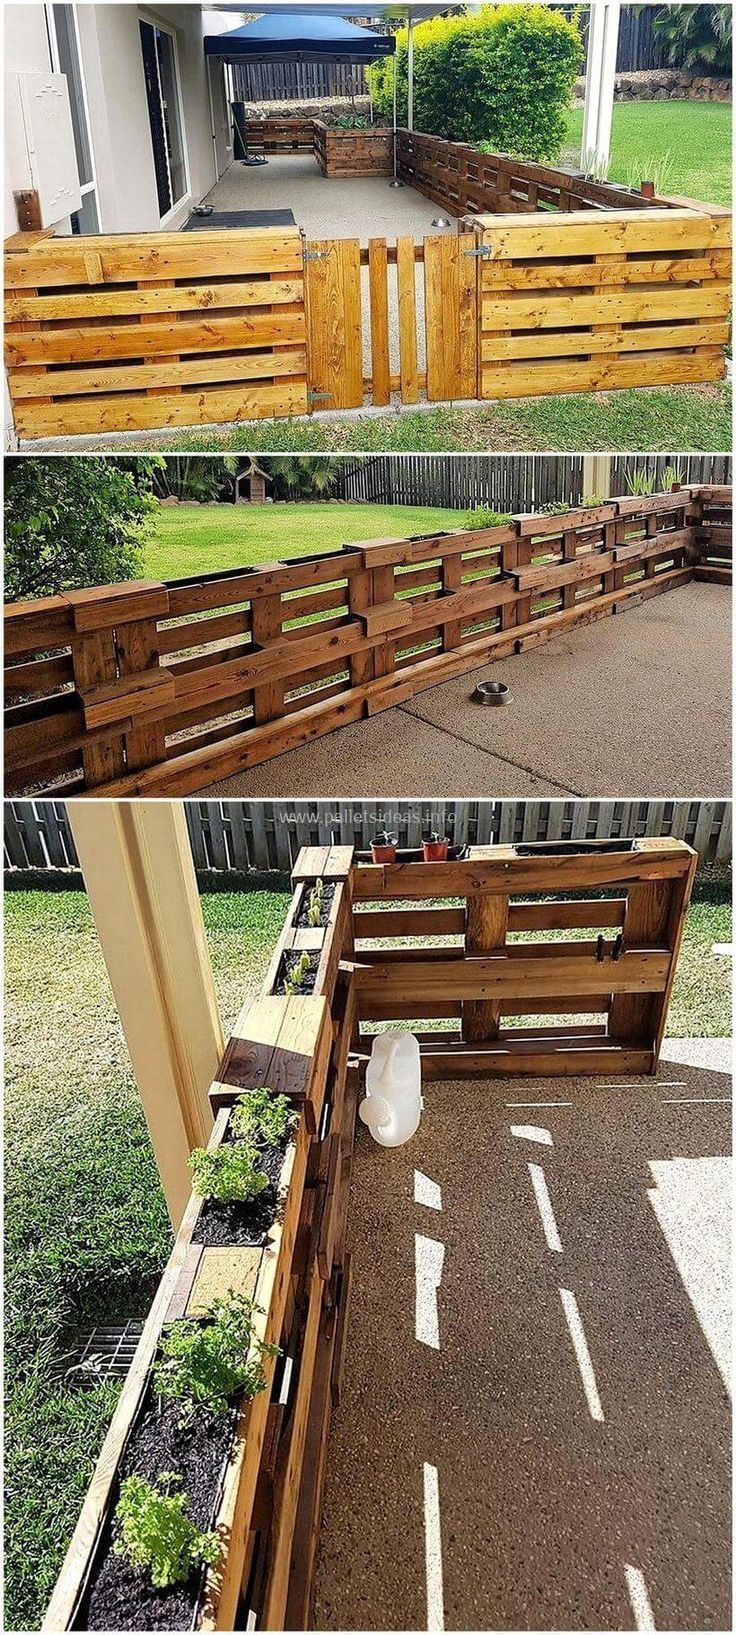 reused pallet fence, #Fence #Pallet #reused